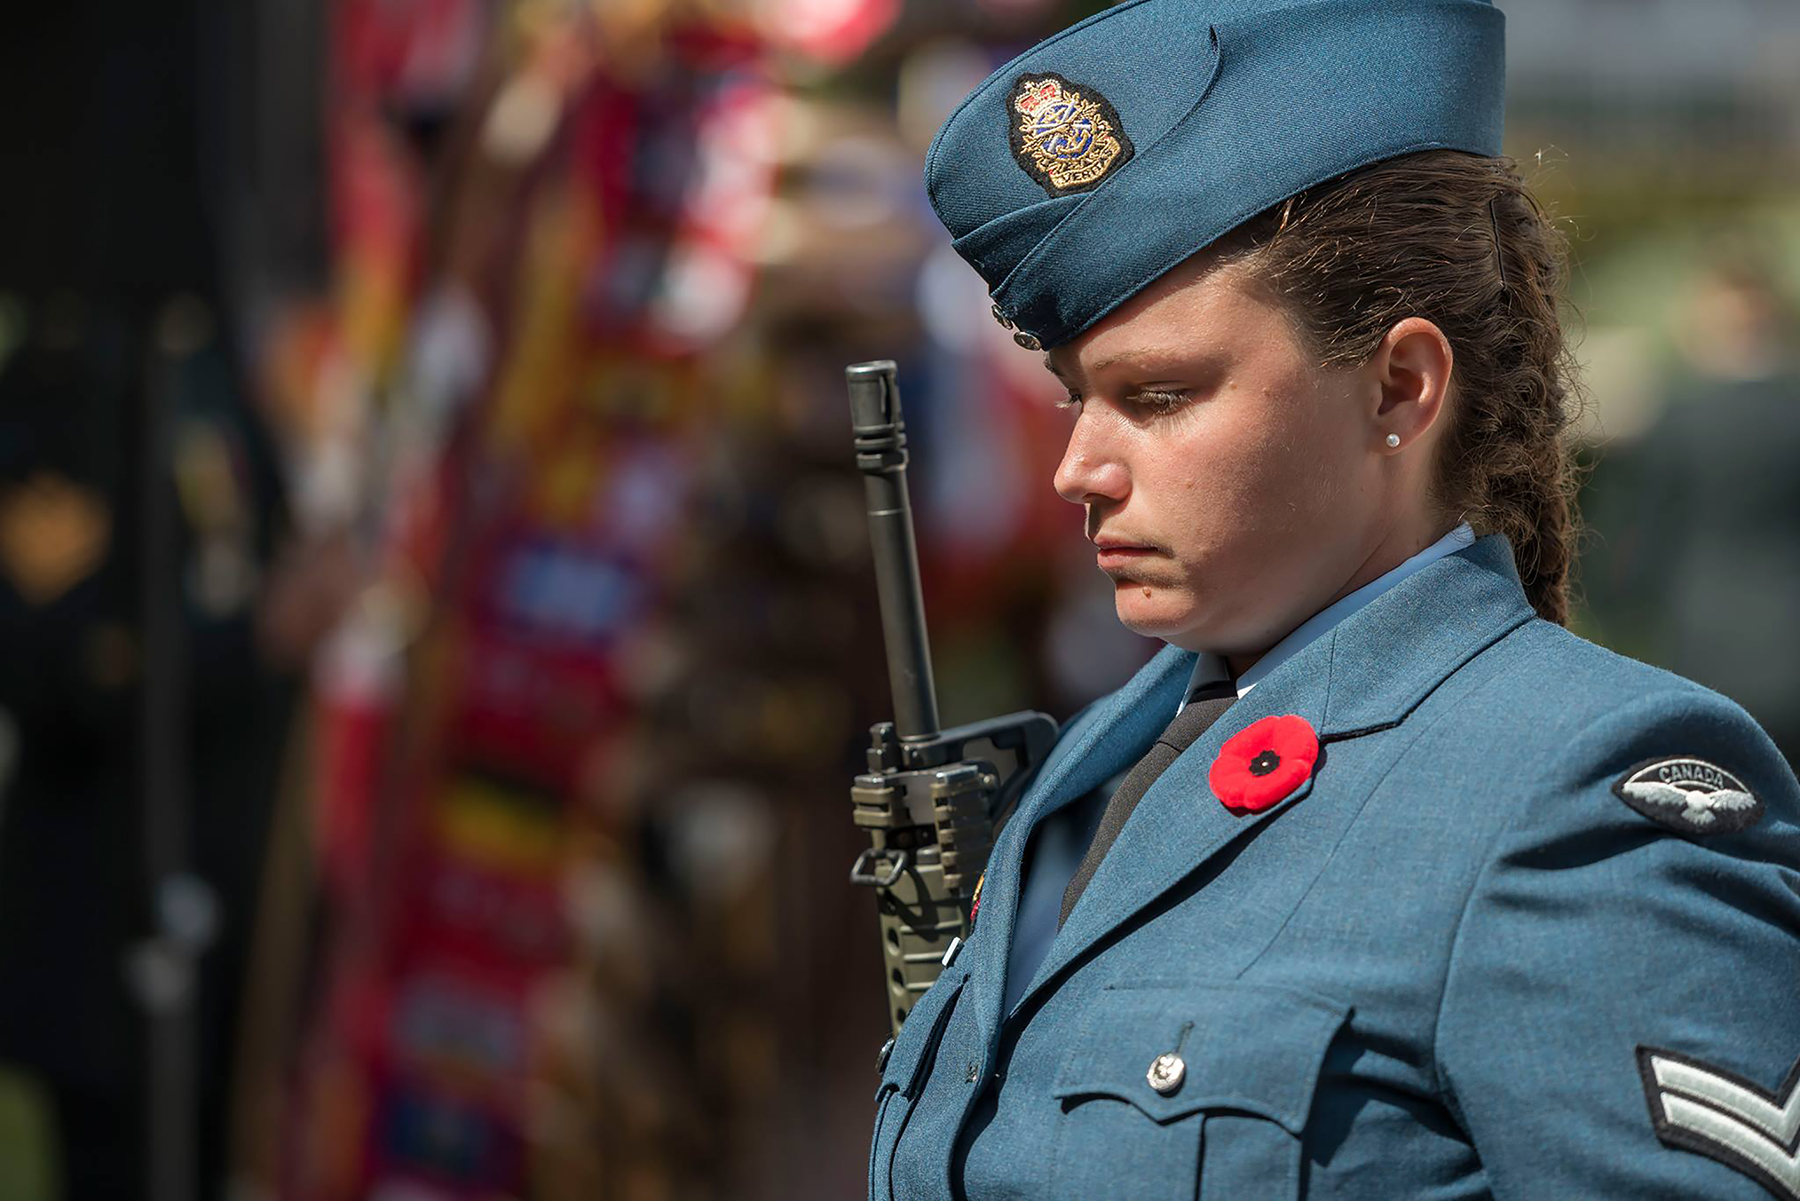 A head-and-shoulders photograph of a young woman in a blue uniform, standing with her head bowed, wearing a red poppy in her lapel and holding an automatic weapon.